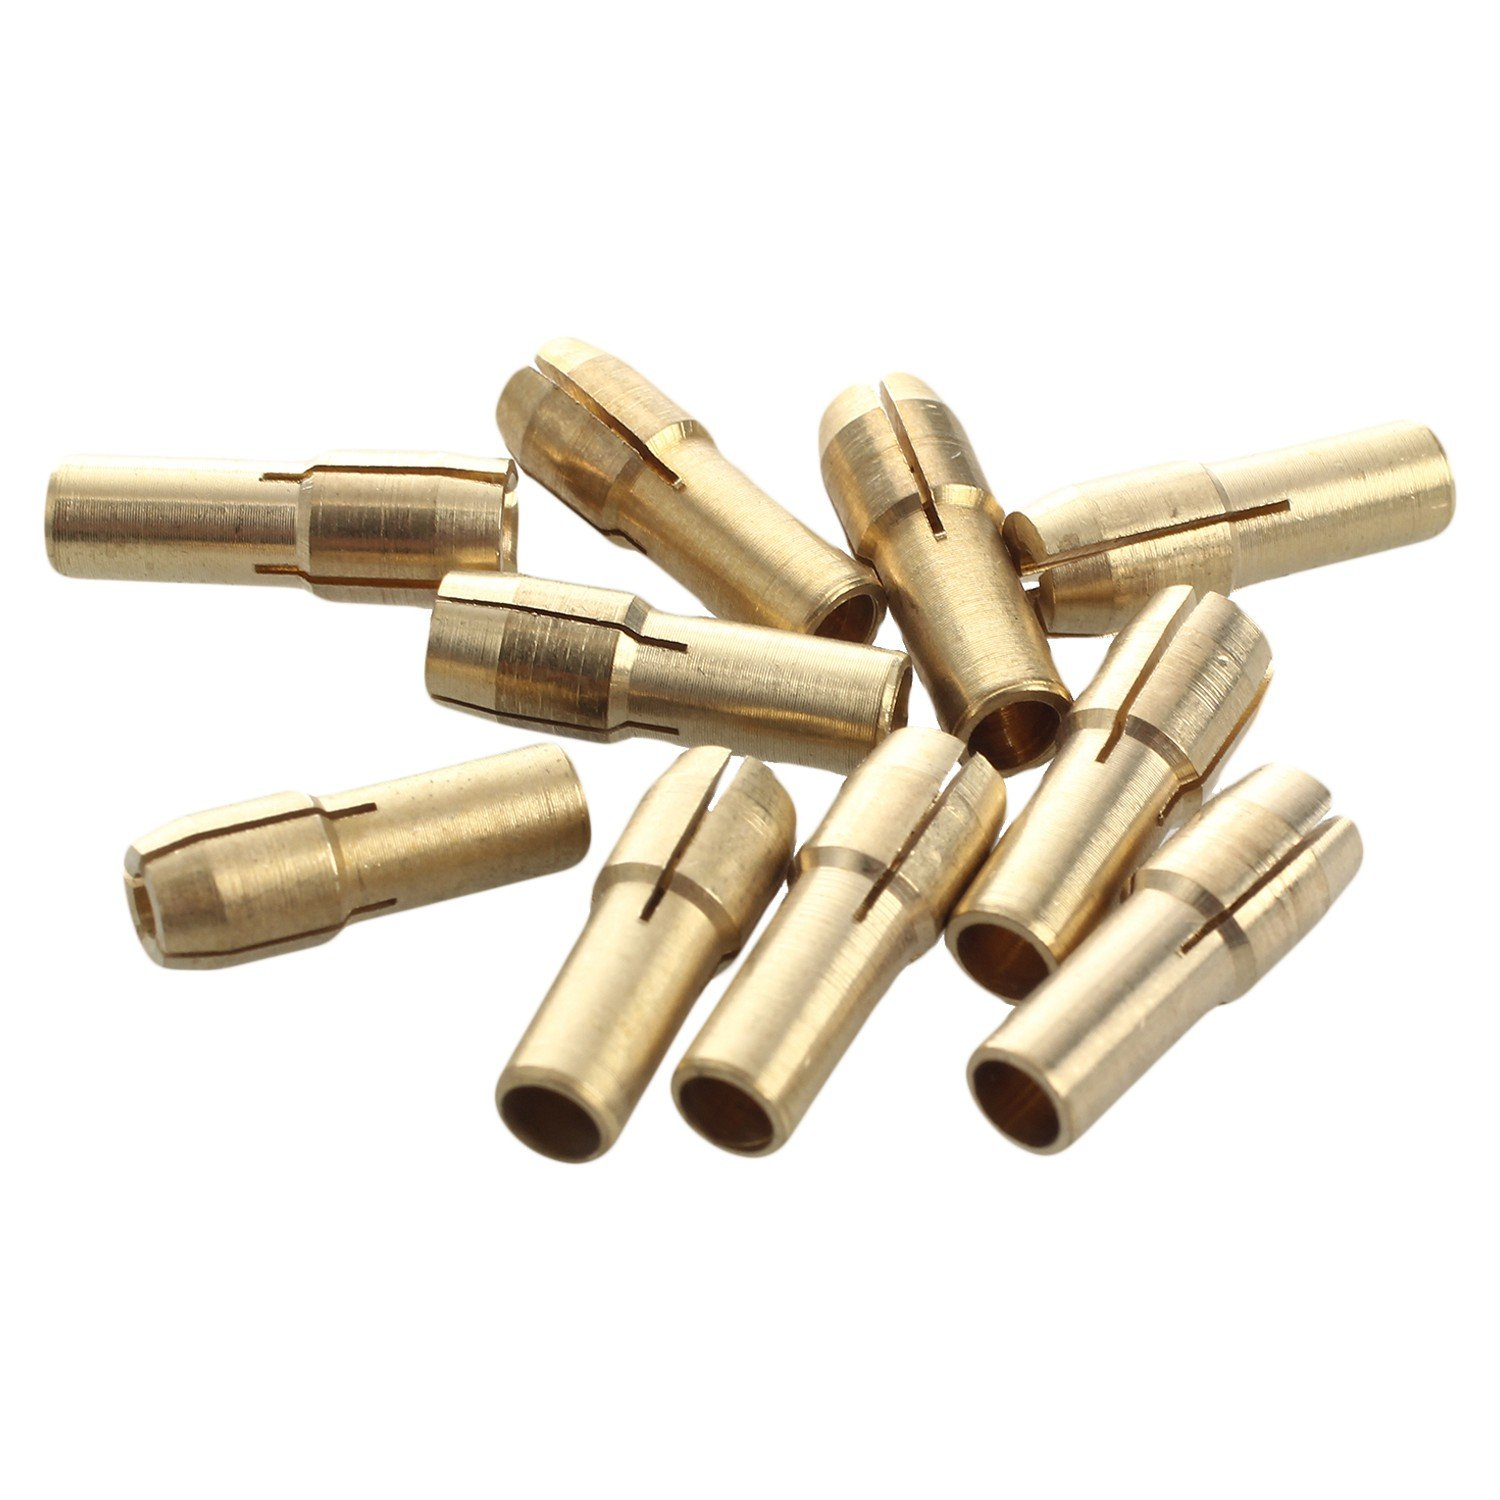 TOOGOO 10 Pieces Mini Drill Brass Collet Chuck for Rotary Tool 0.5-3.2mm